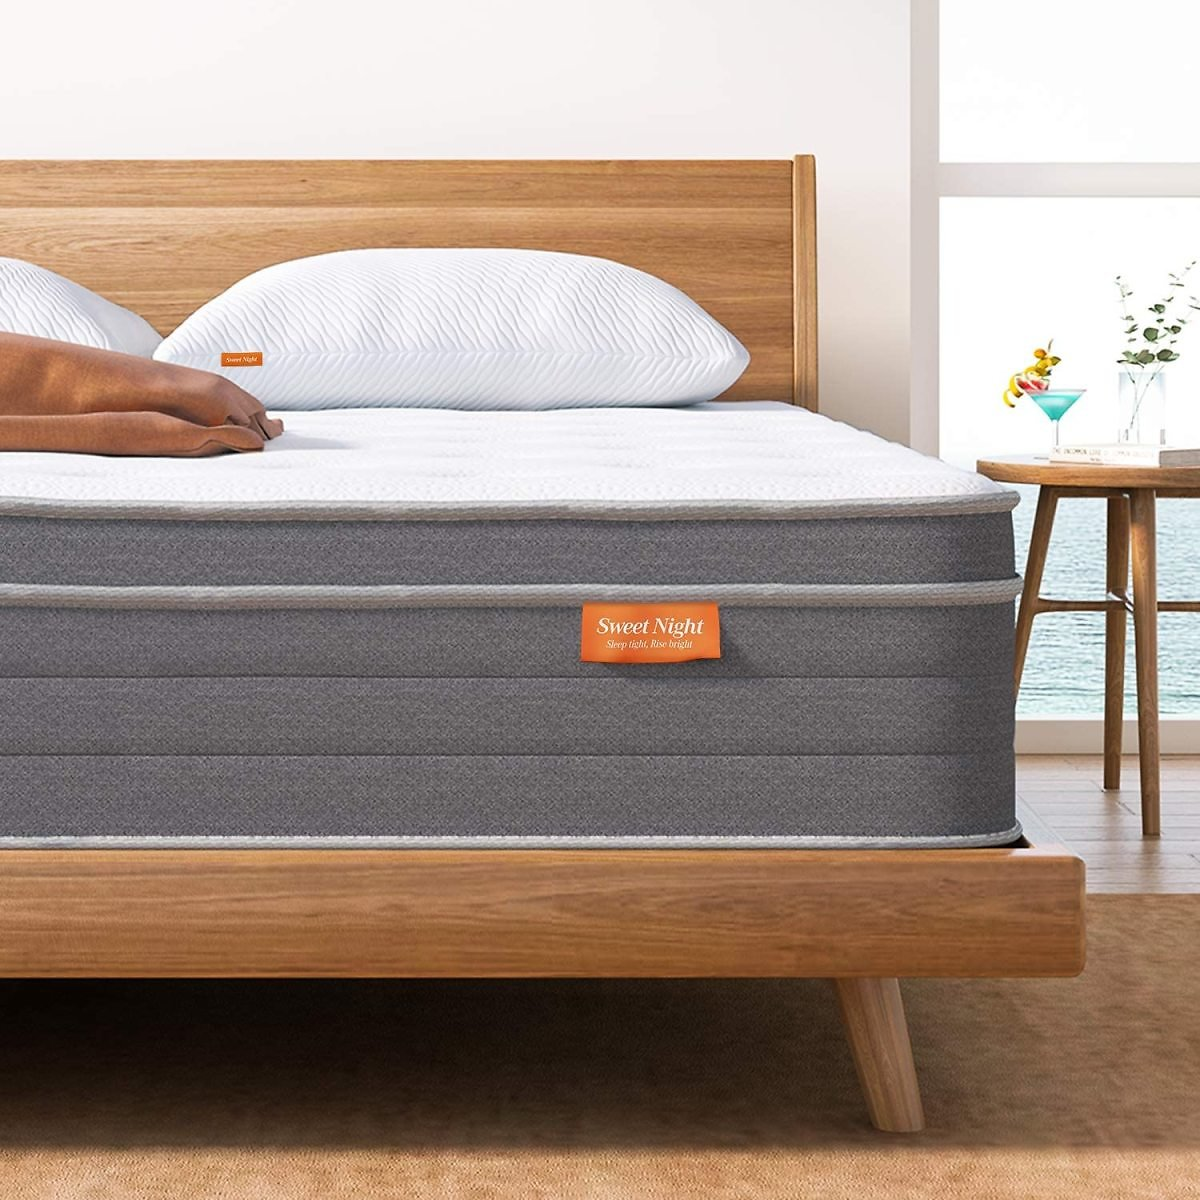 Sweet Night 10 Inch Queen Mattress In a Box - Sleep Cooler with Euro Pillow Top Gel Memory Foam, Individually Wrapped Pocket Springs Hybrid Mattresses for Motion Isolation, Queen Size, Island